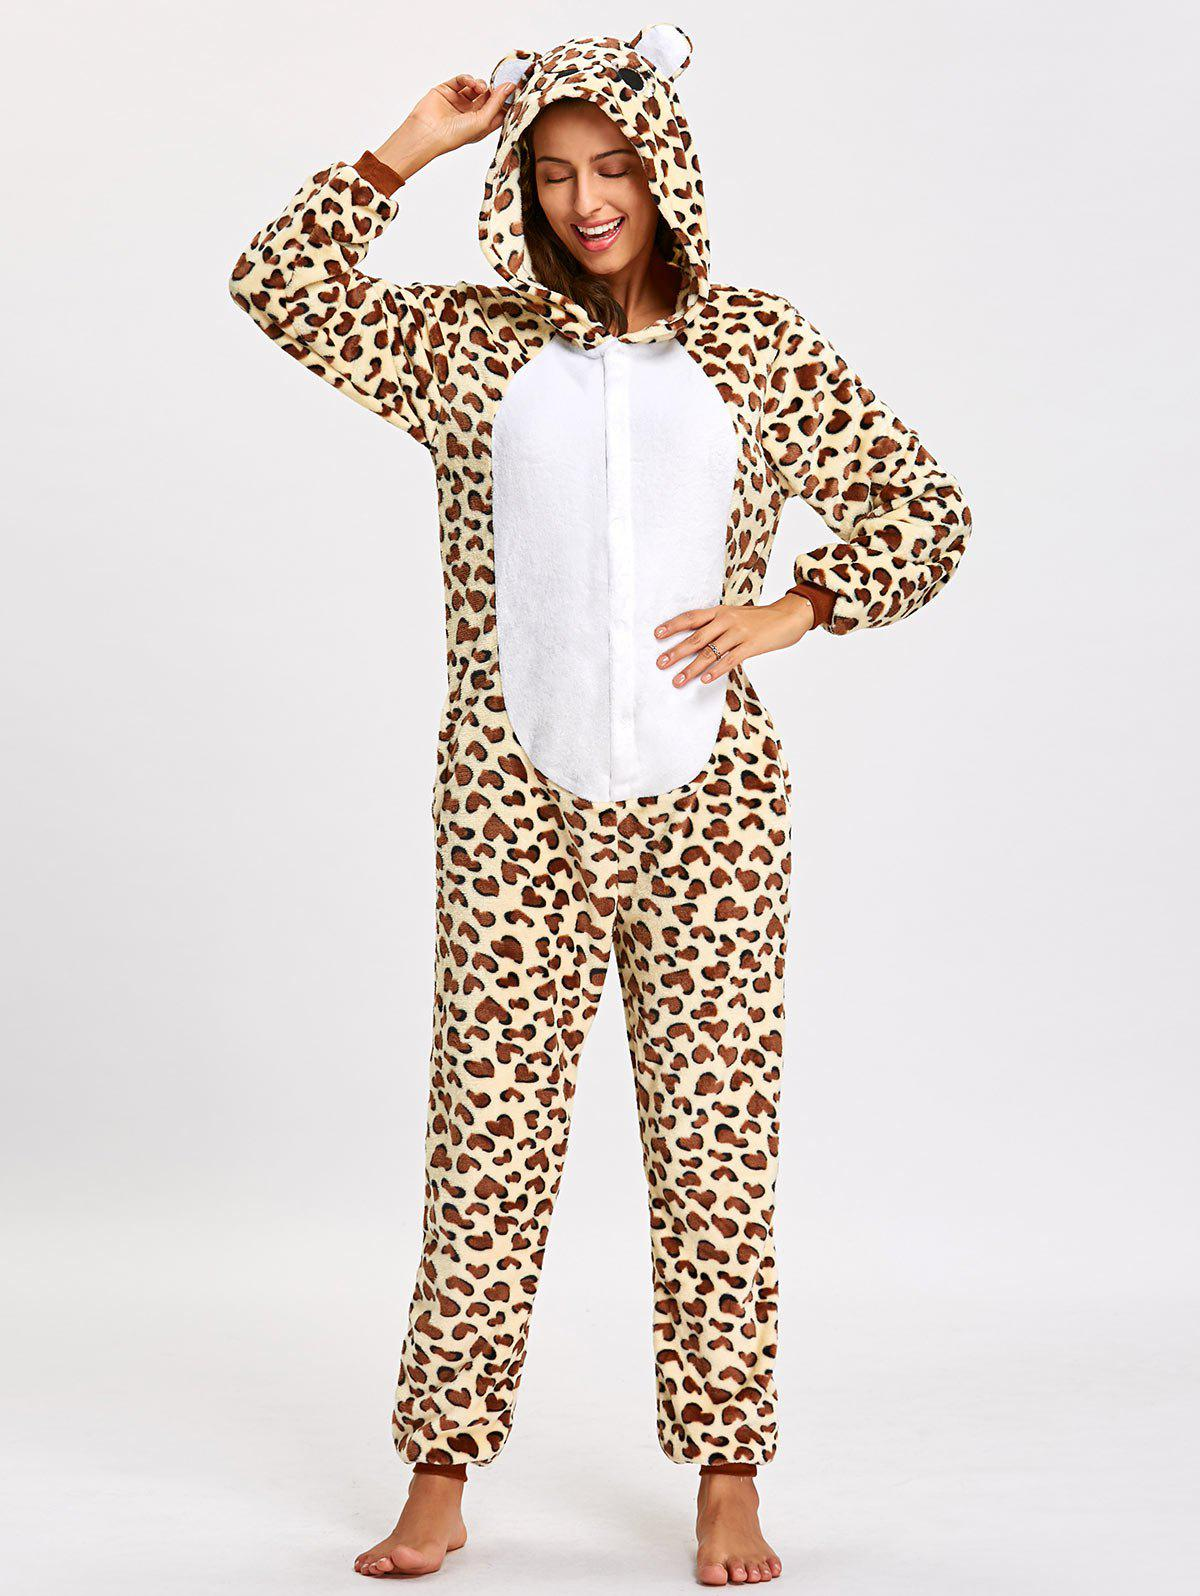 Sale Fleece Leopard Bear Animal Onesie Pjs